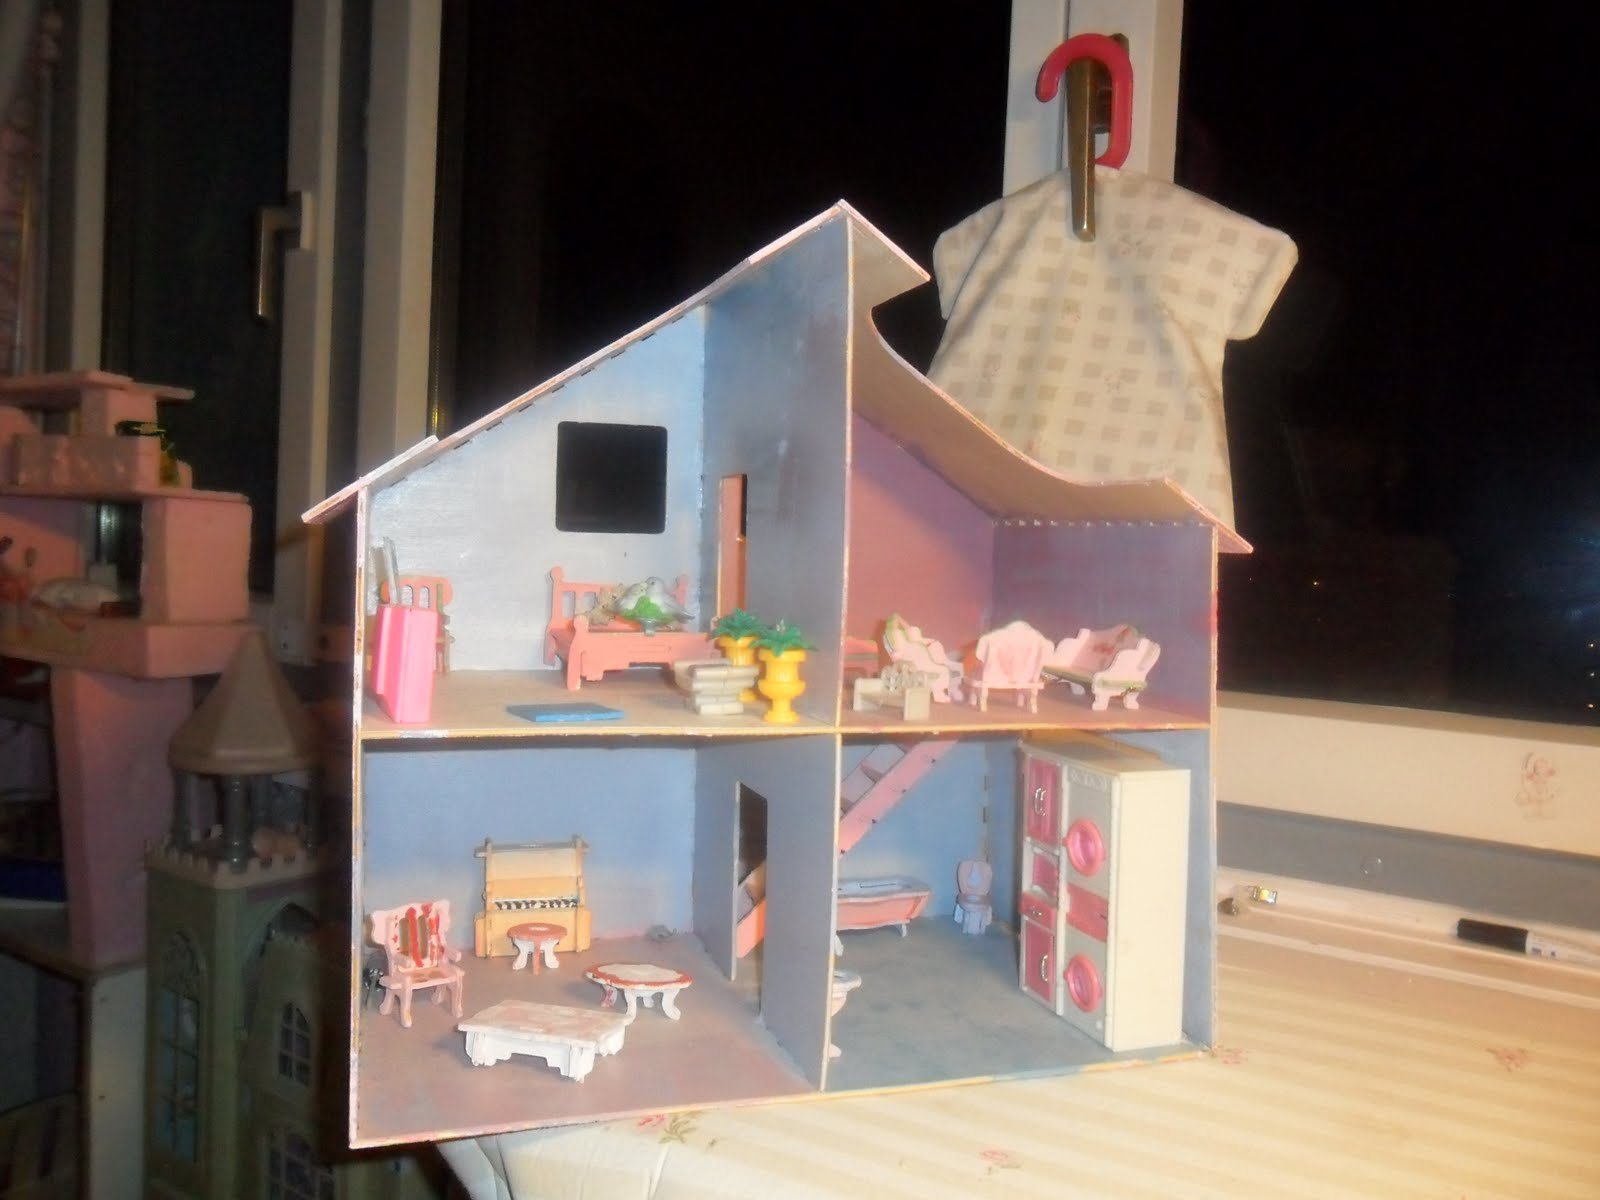 im kinderzimmer 4 puppenhaus m bel selber gemacht. Black Bedroom Furniture Sets. Home Design Ideas